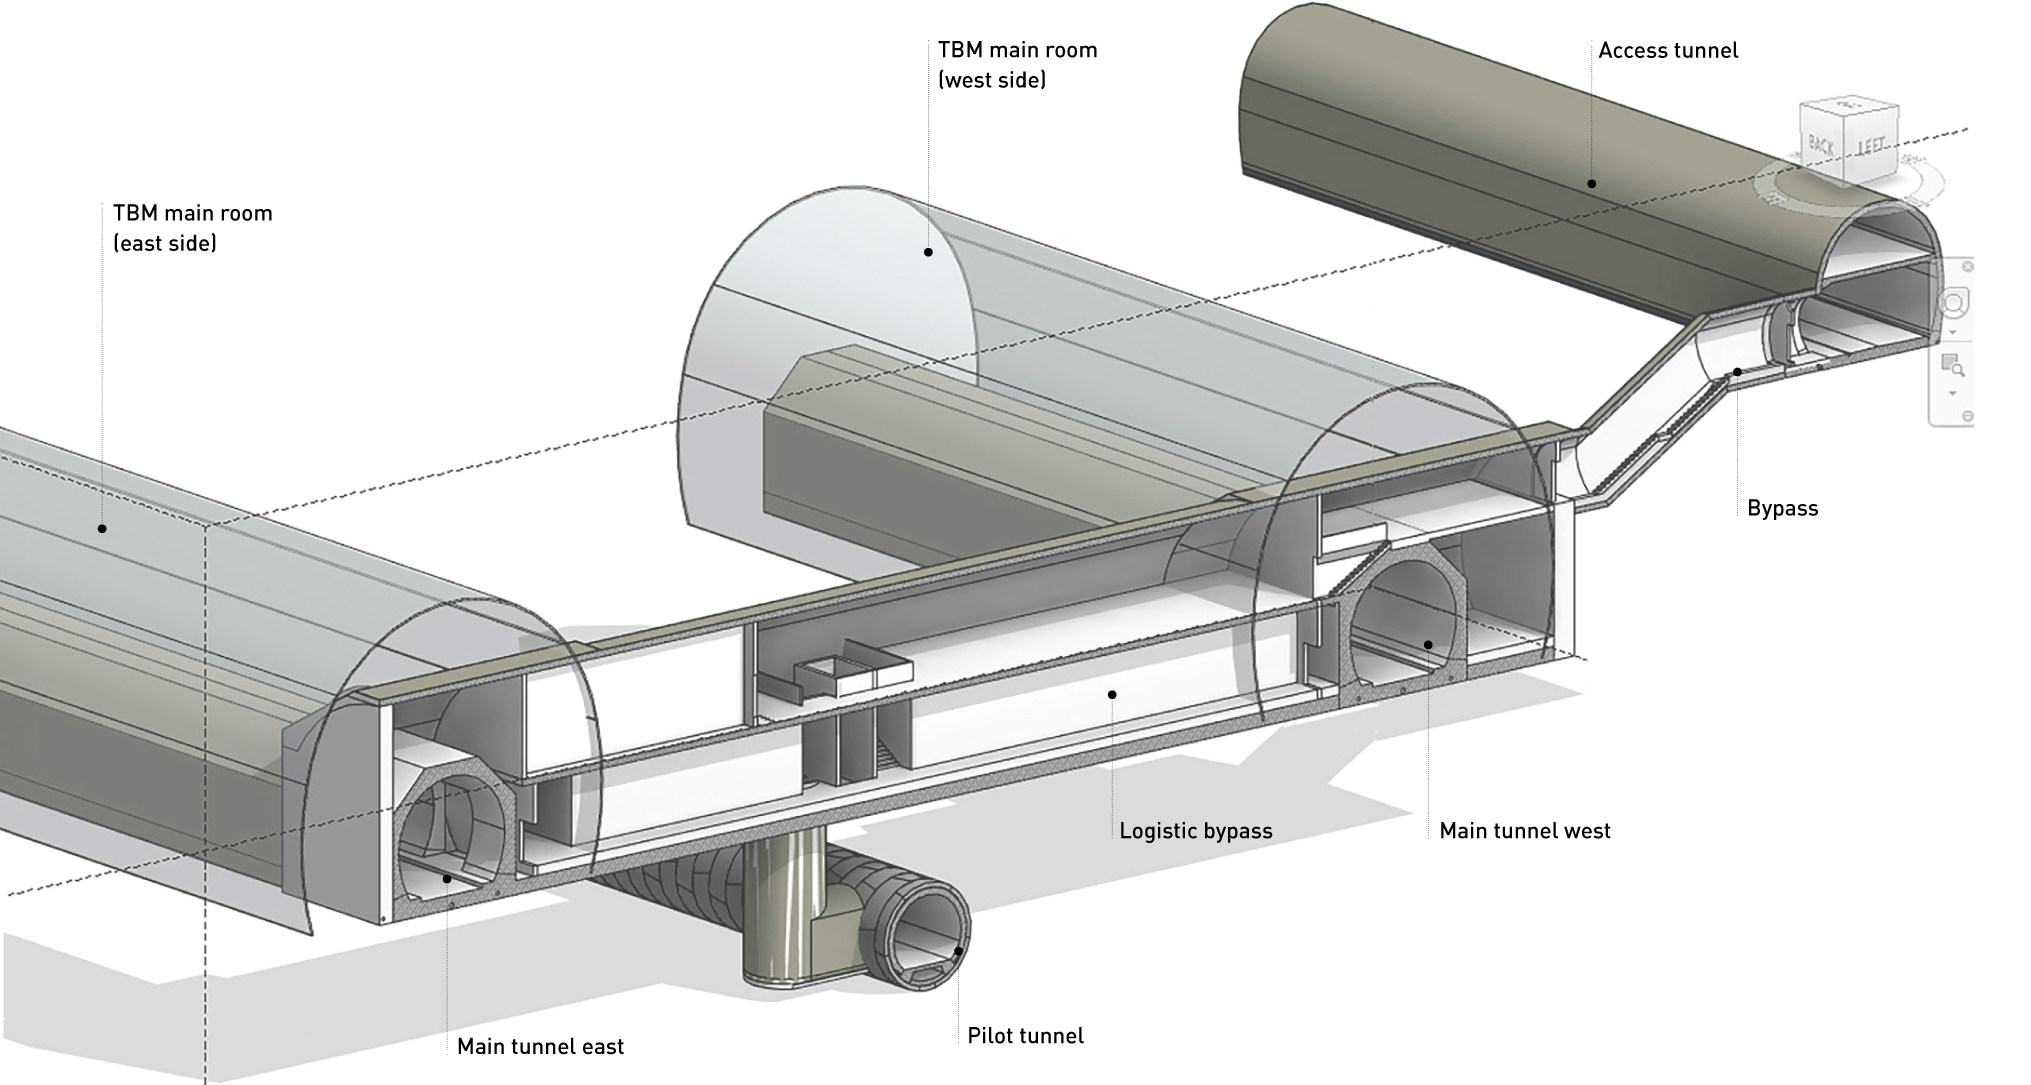 example of bim rendering for brenner base tunnel project